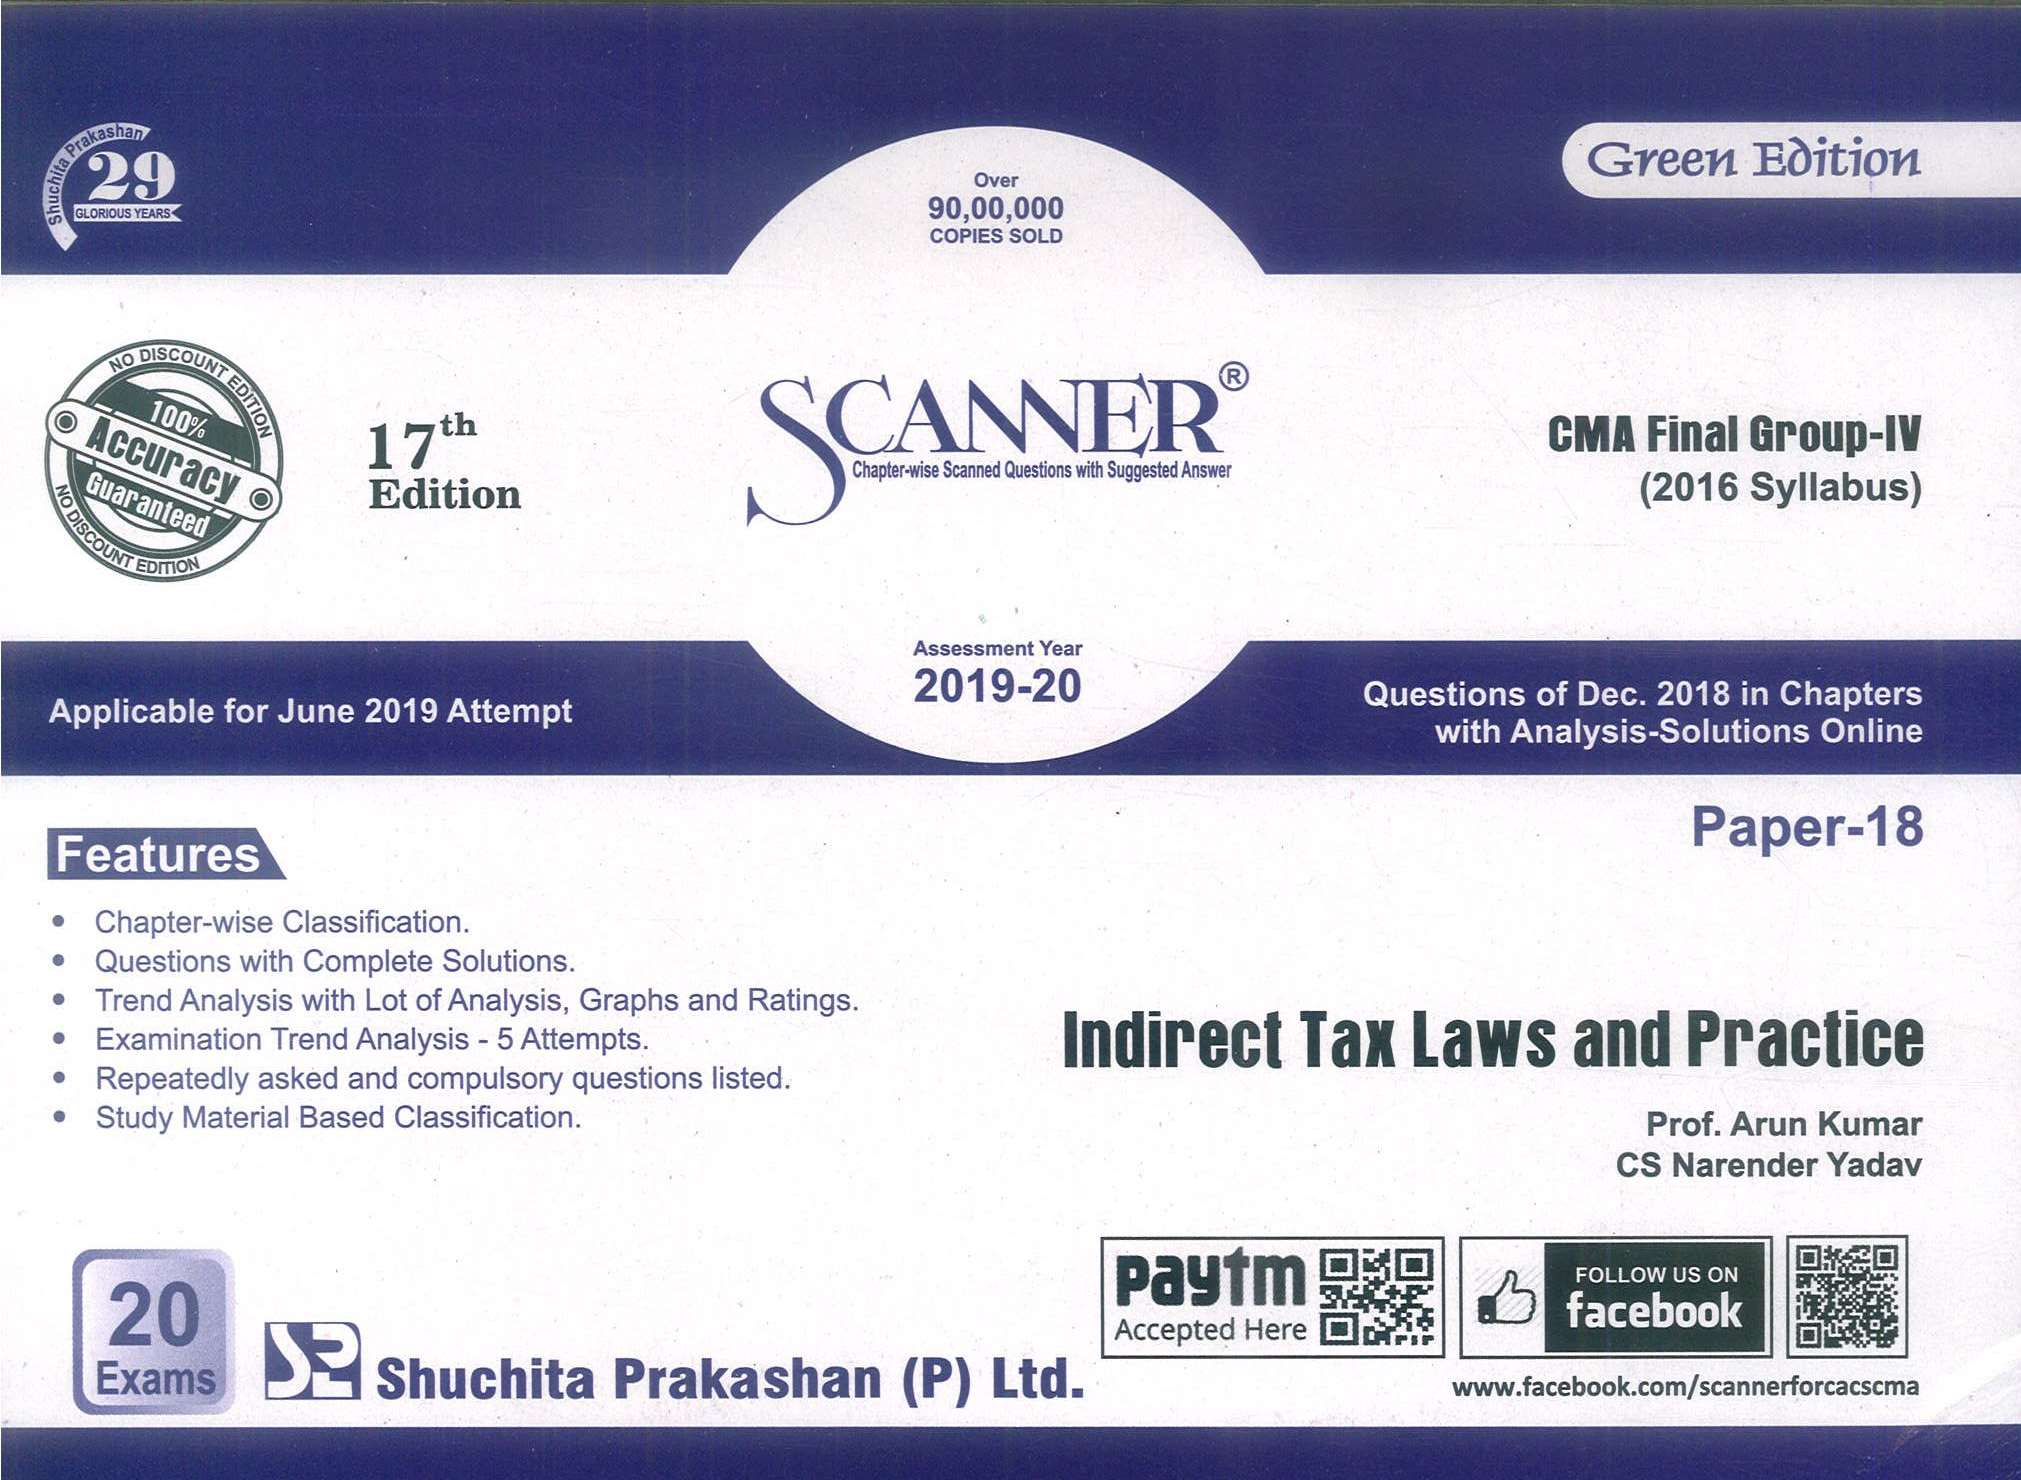 Shuchita Solved Scanner Indirect Tax Laws and Practice for CMA Final Group IV Paper 18 New Syllabus for June 2019 by Prof. Arun Kumar and CA Raj Agarwal (Shuchita Prakashan) Edition 17th Jan 2019